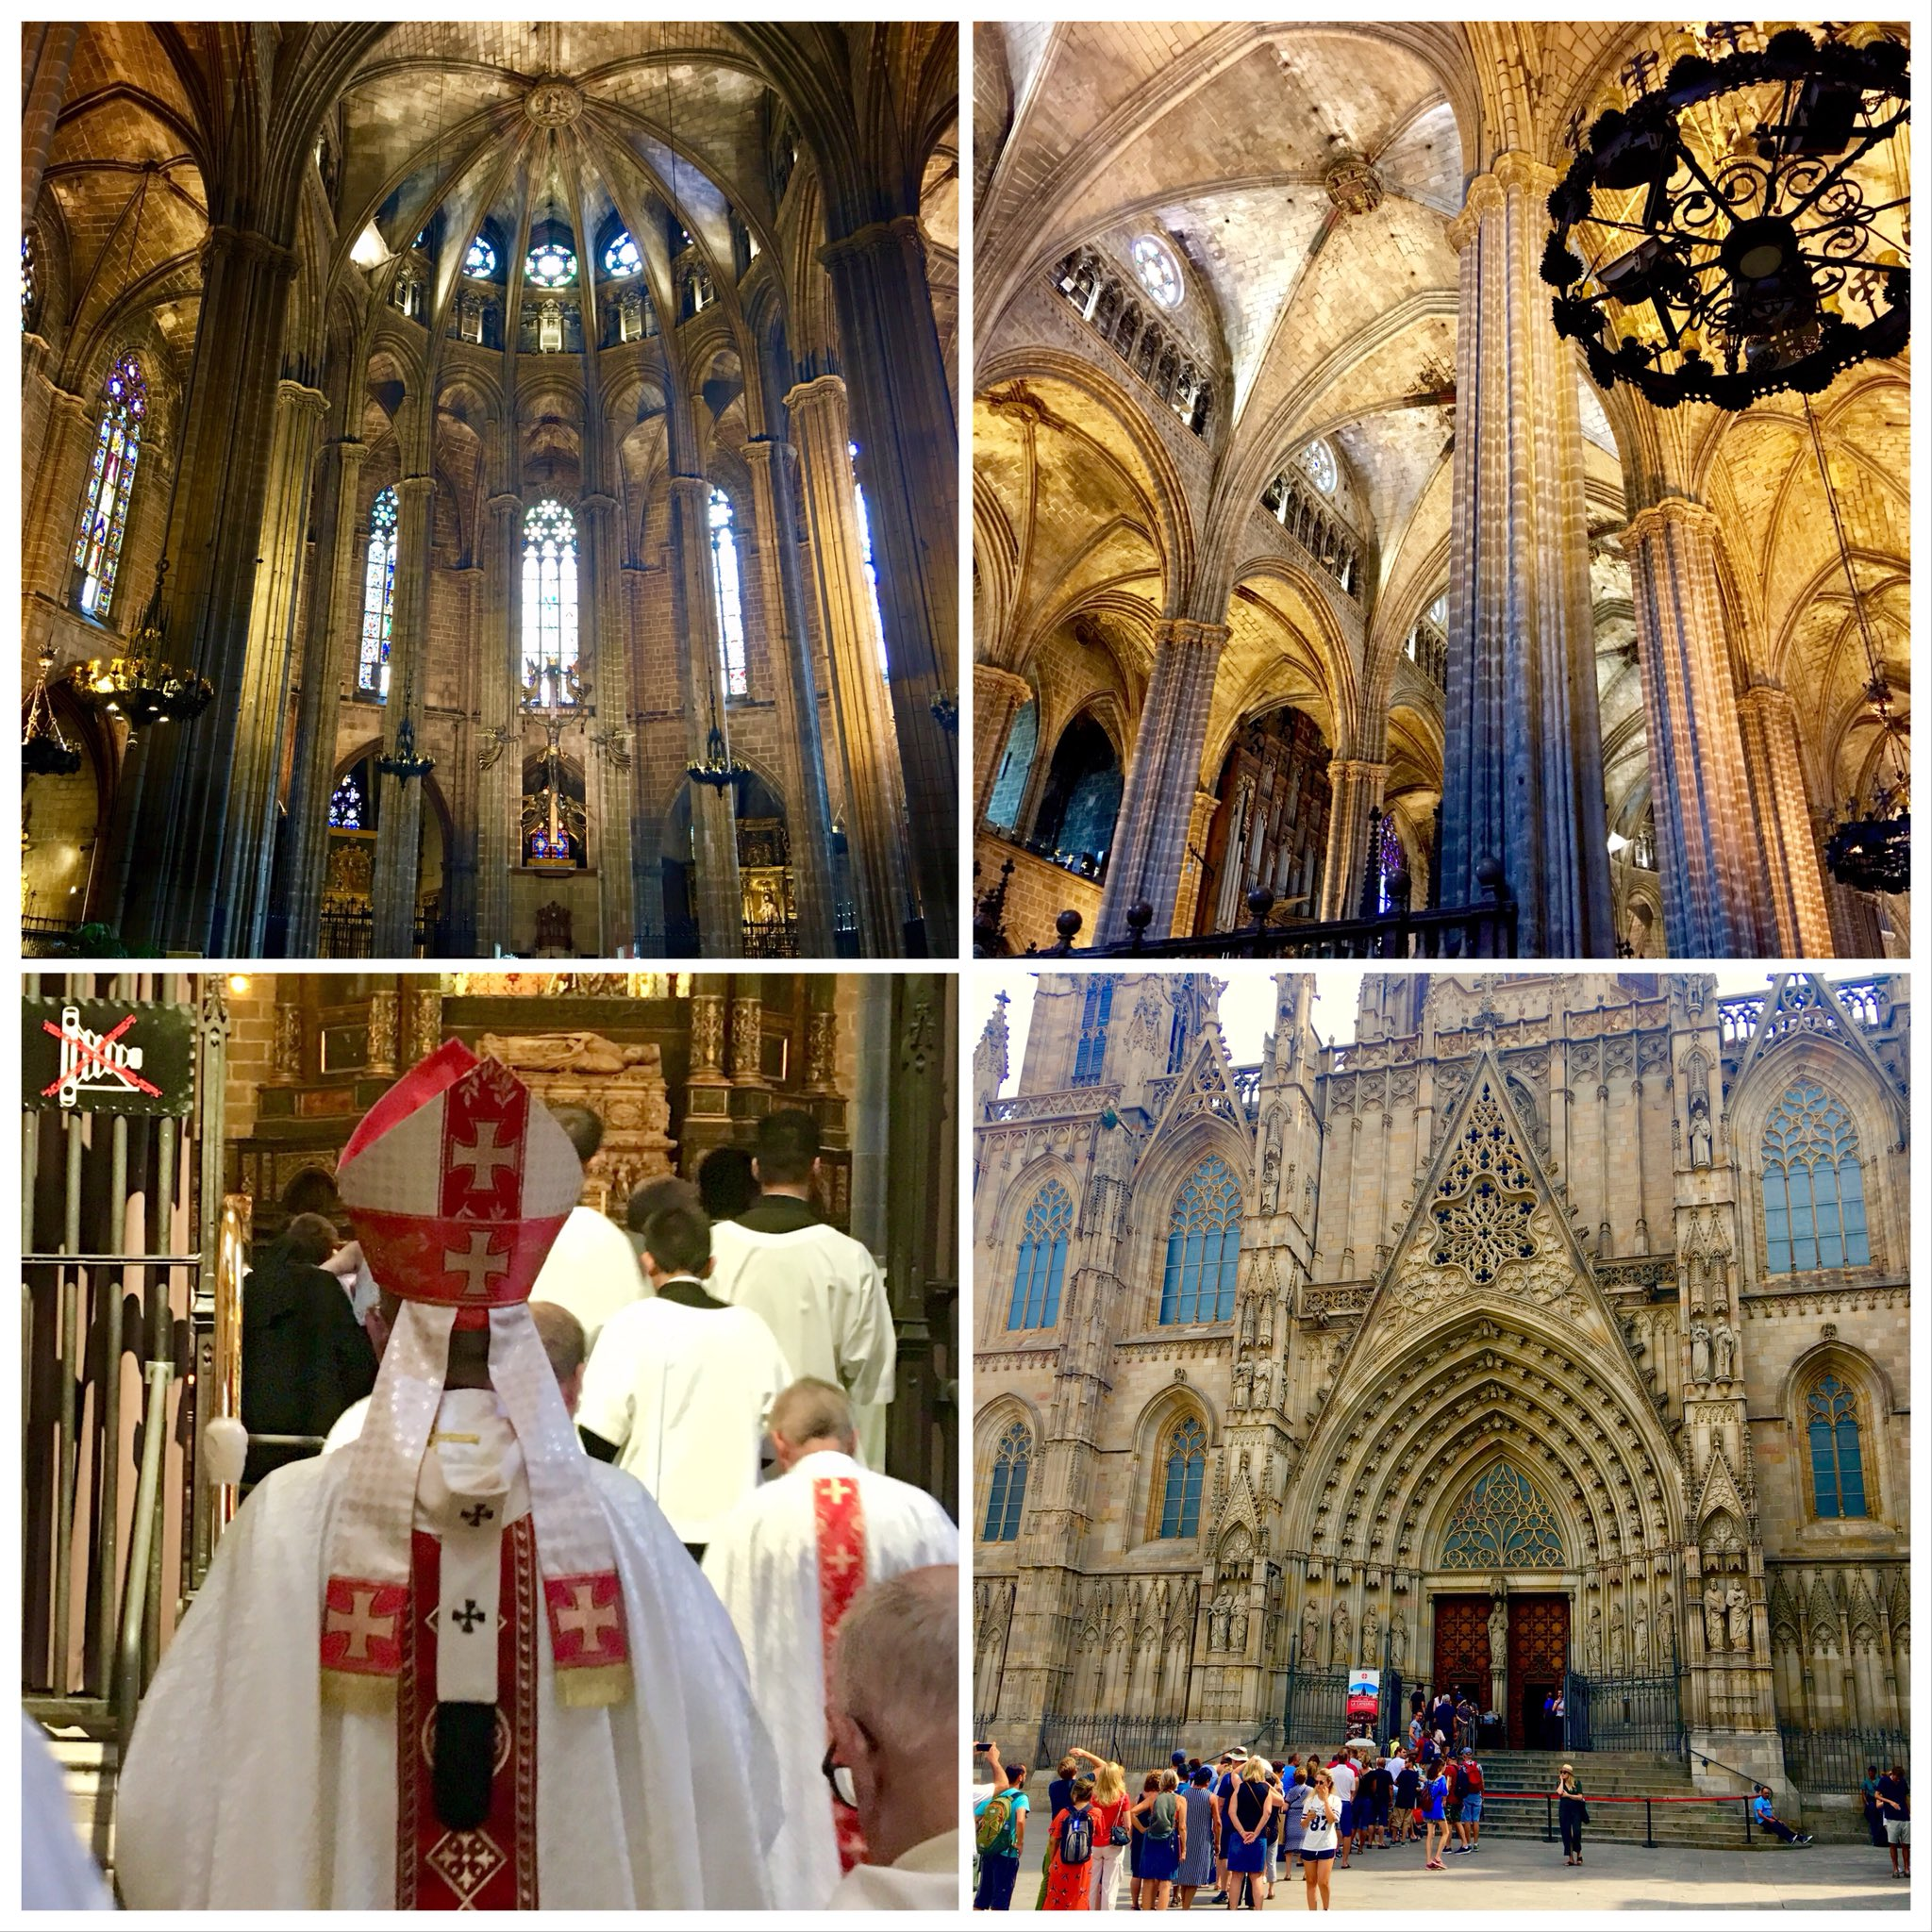 Odyssey Spain 2018, Barcelona Cathedral, Gothic architecture constructed from the 13th to 15th centuries. https://t.co/hiENXrWakv